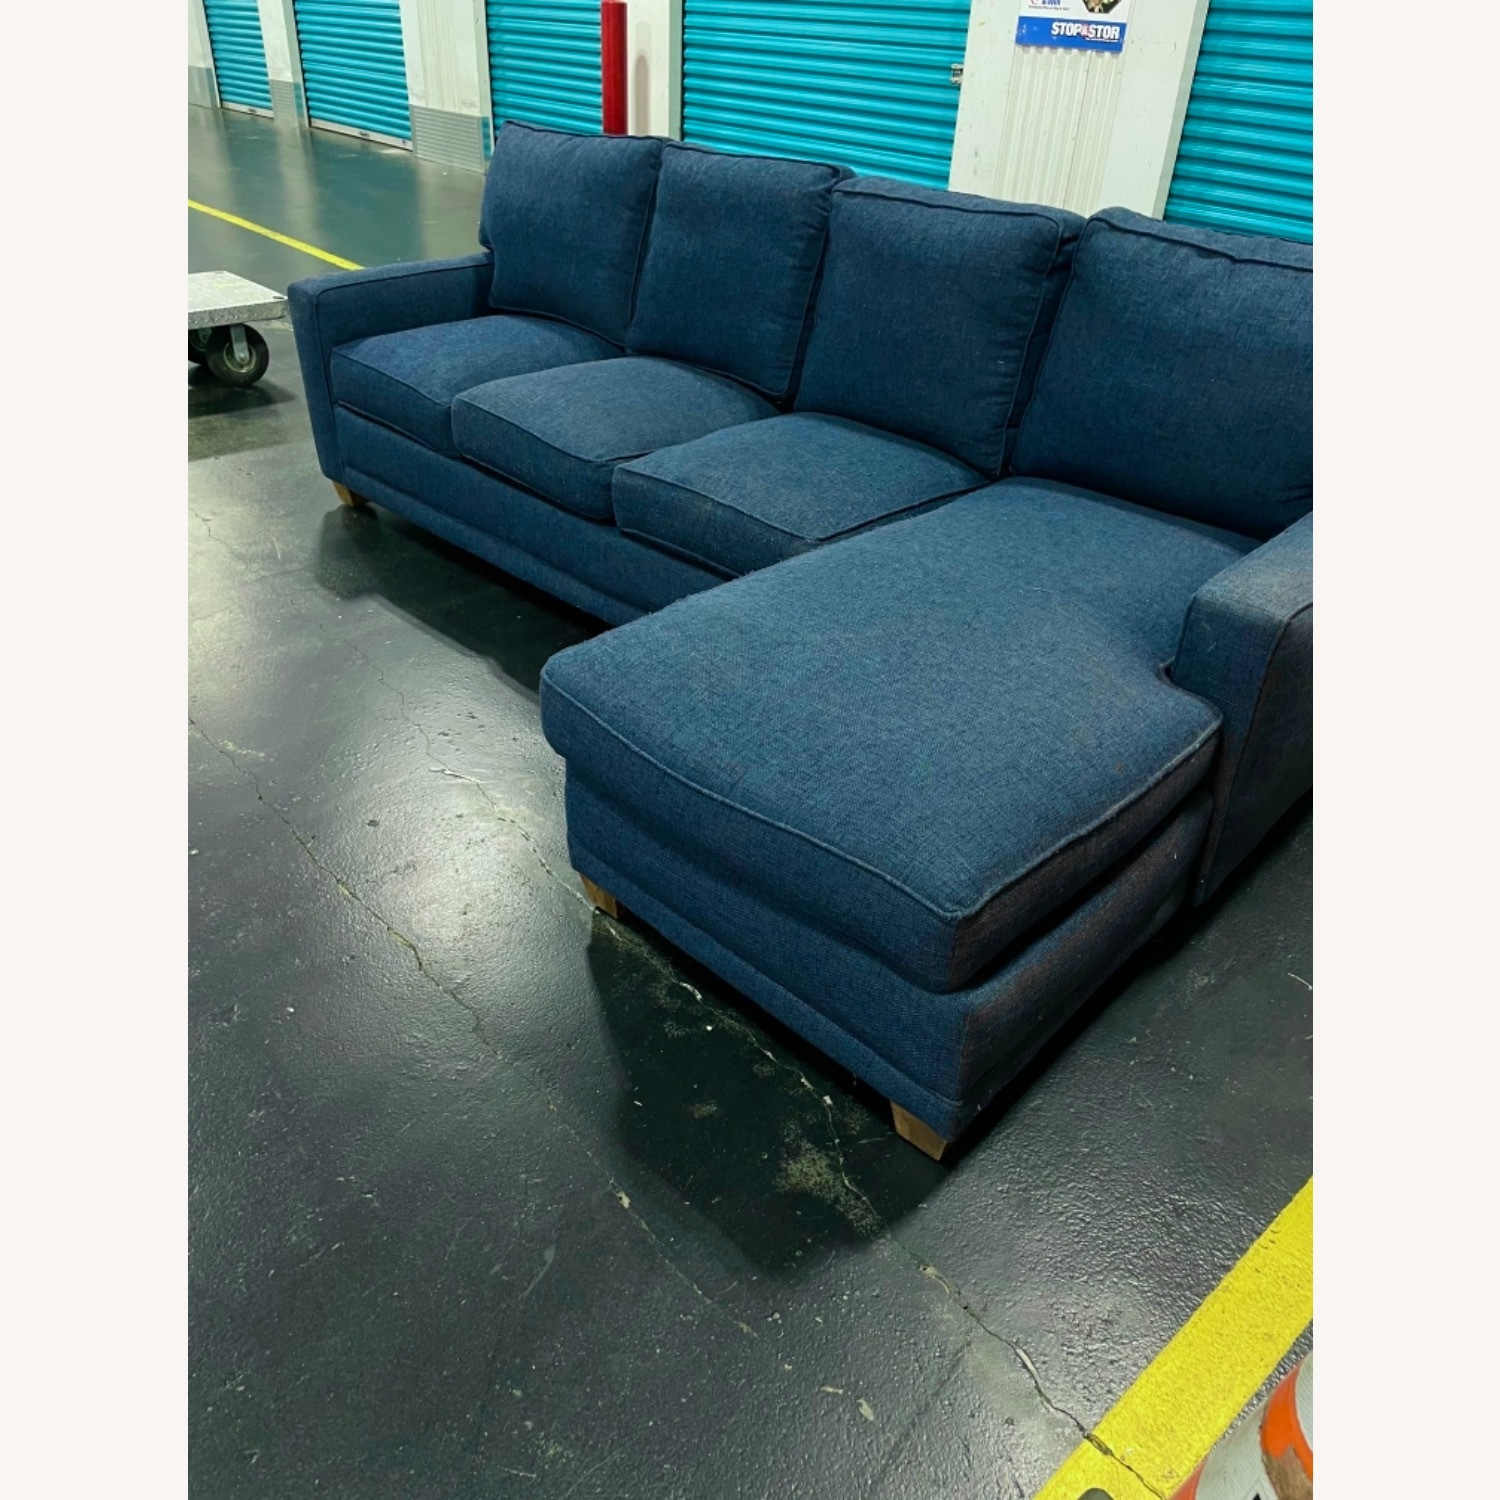 Rowe My Style 2 Piece Sectional - image-10